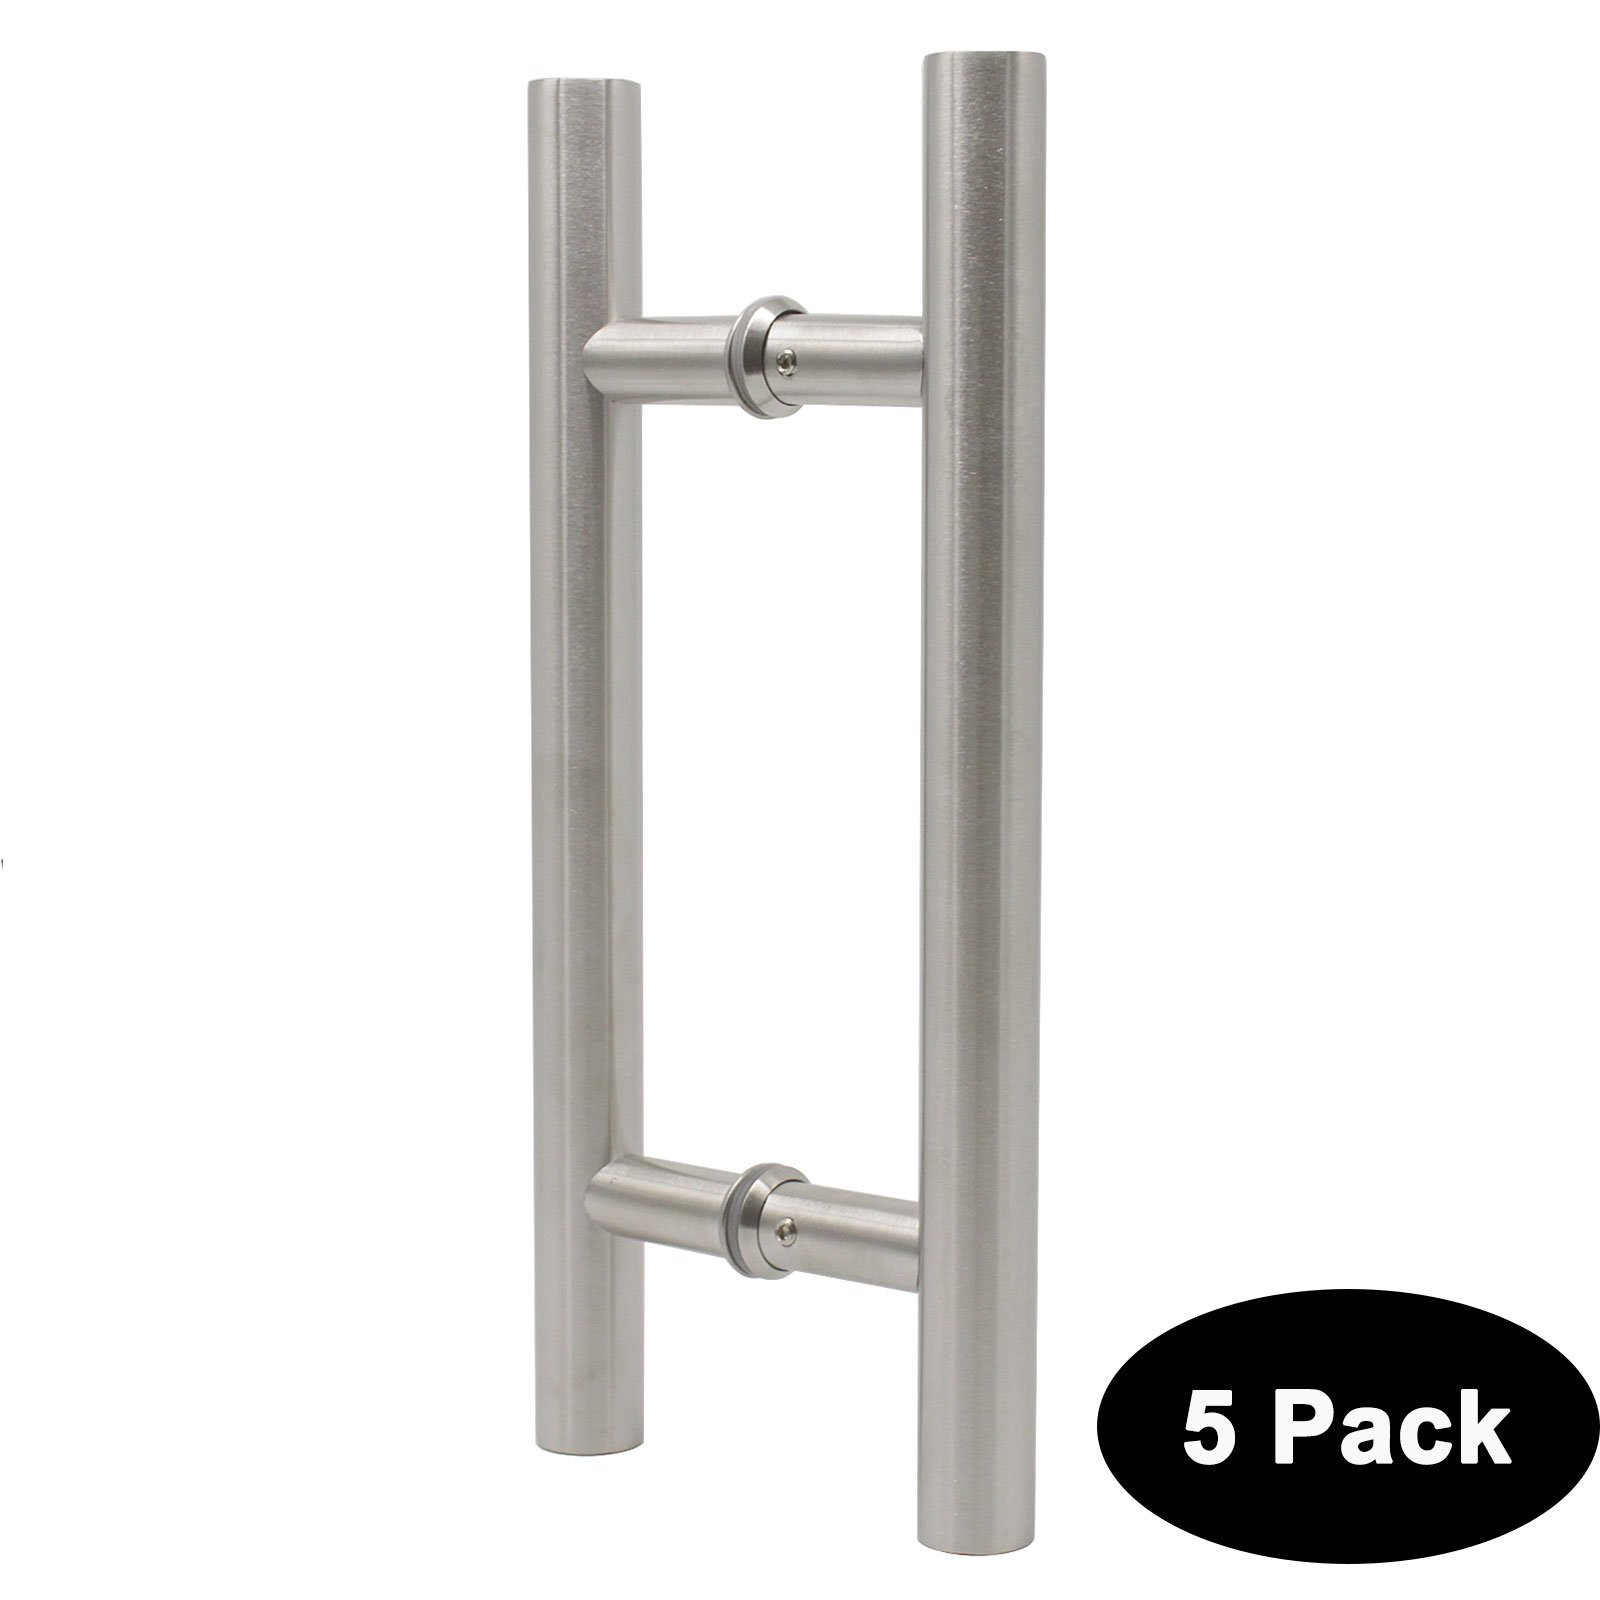 Probrico 5 Pack Gate Door Pull 12'' 305mm Barn Glass Wood Door Handle T Bar Two Sides Large 304 Stainless Steel Heavy Duty Door Pulls Brushed Nickel